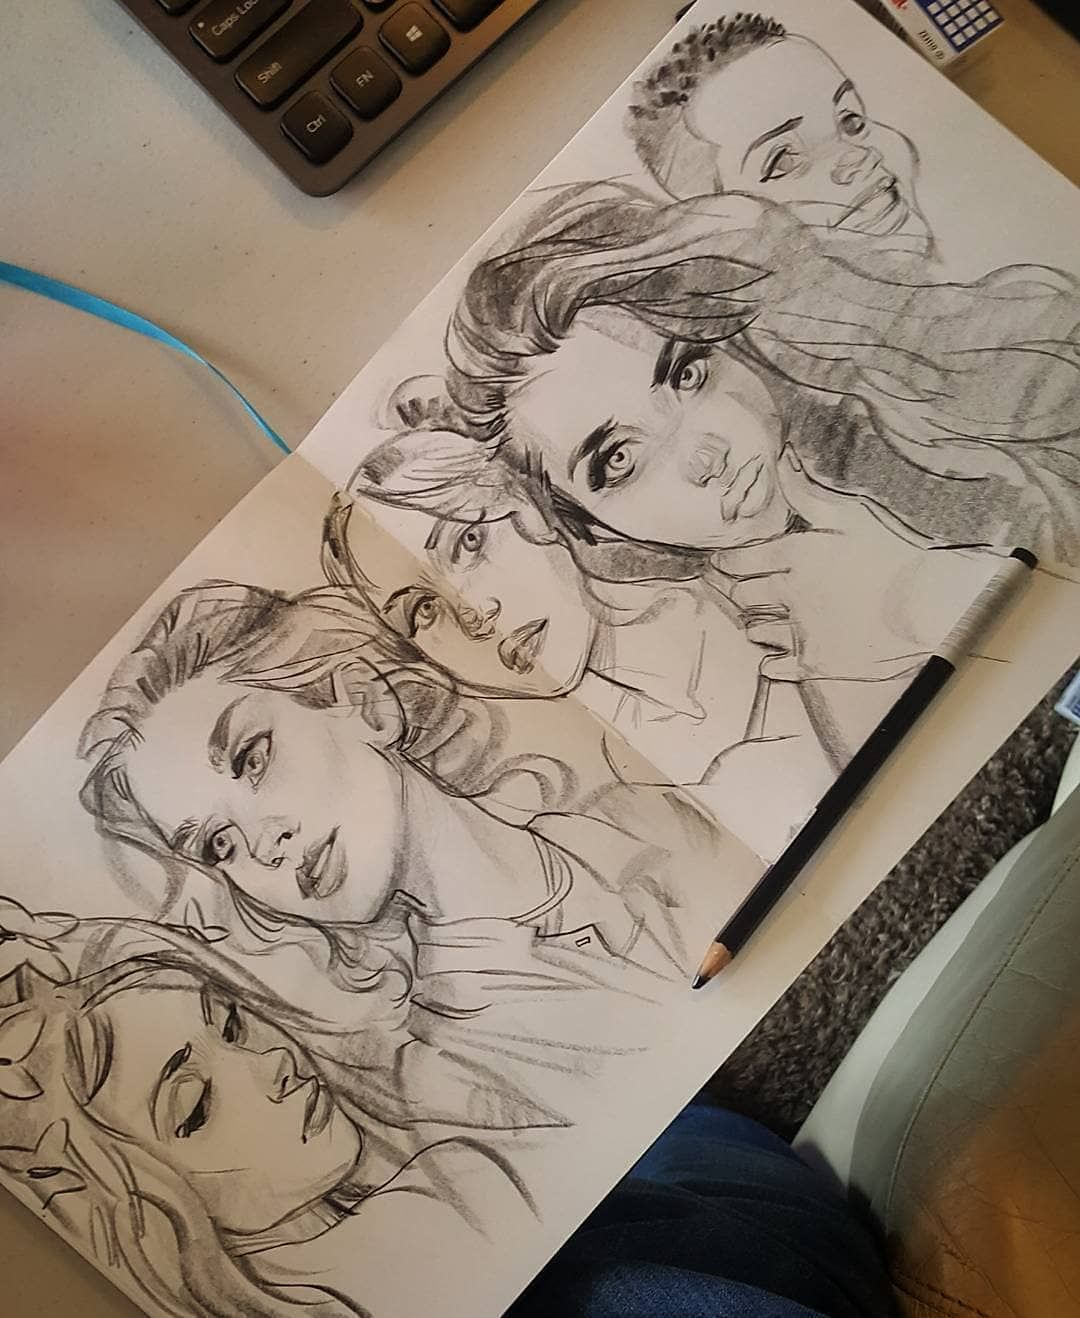 Wonderful Sketches By Melmadedooks No Copyright Infringement